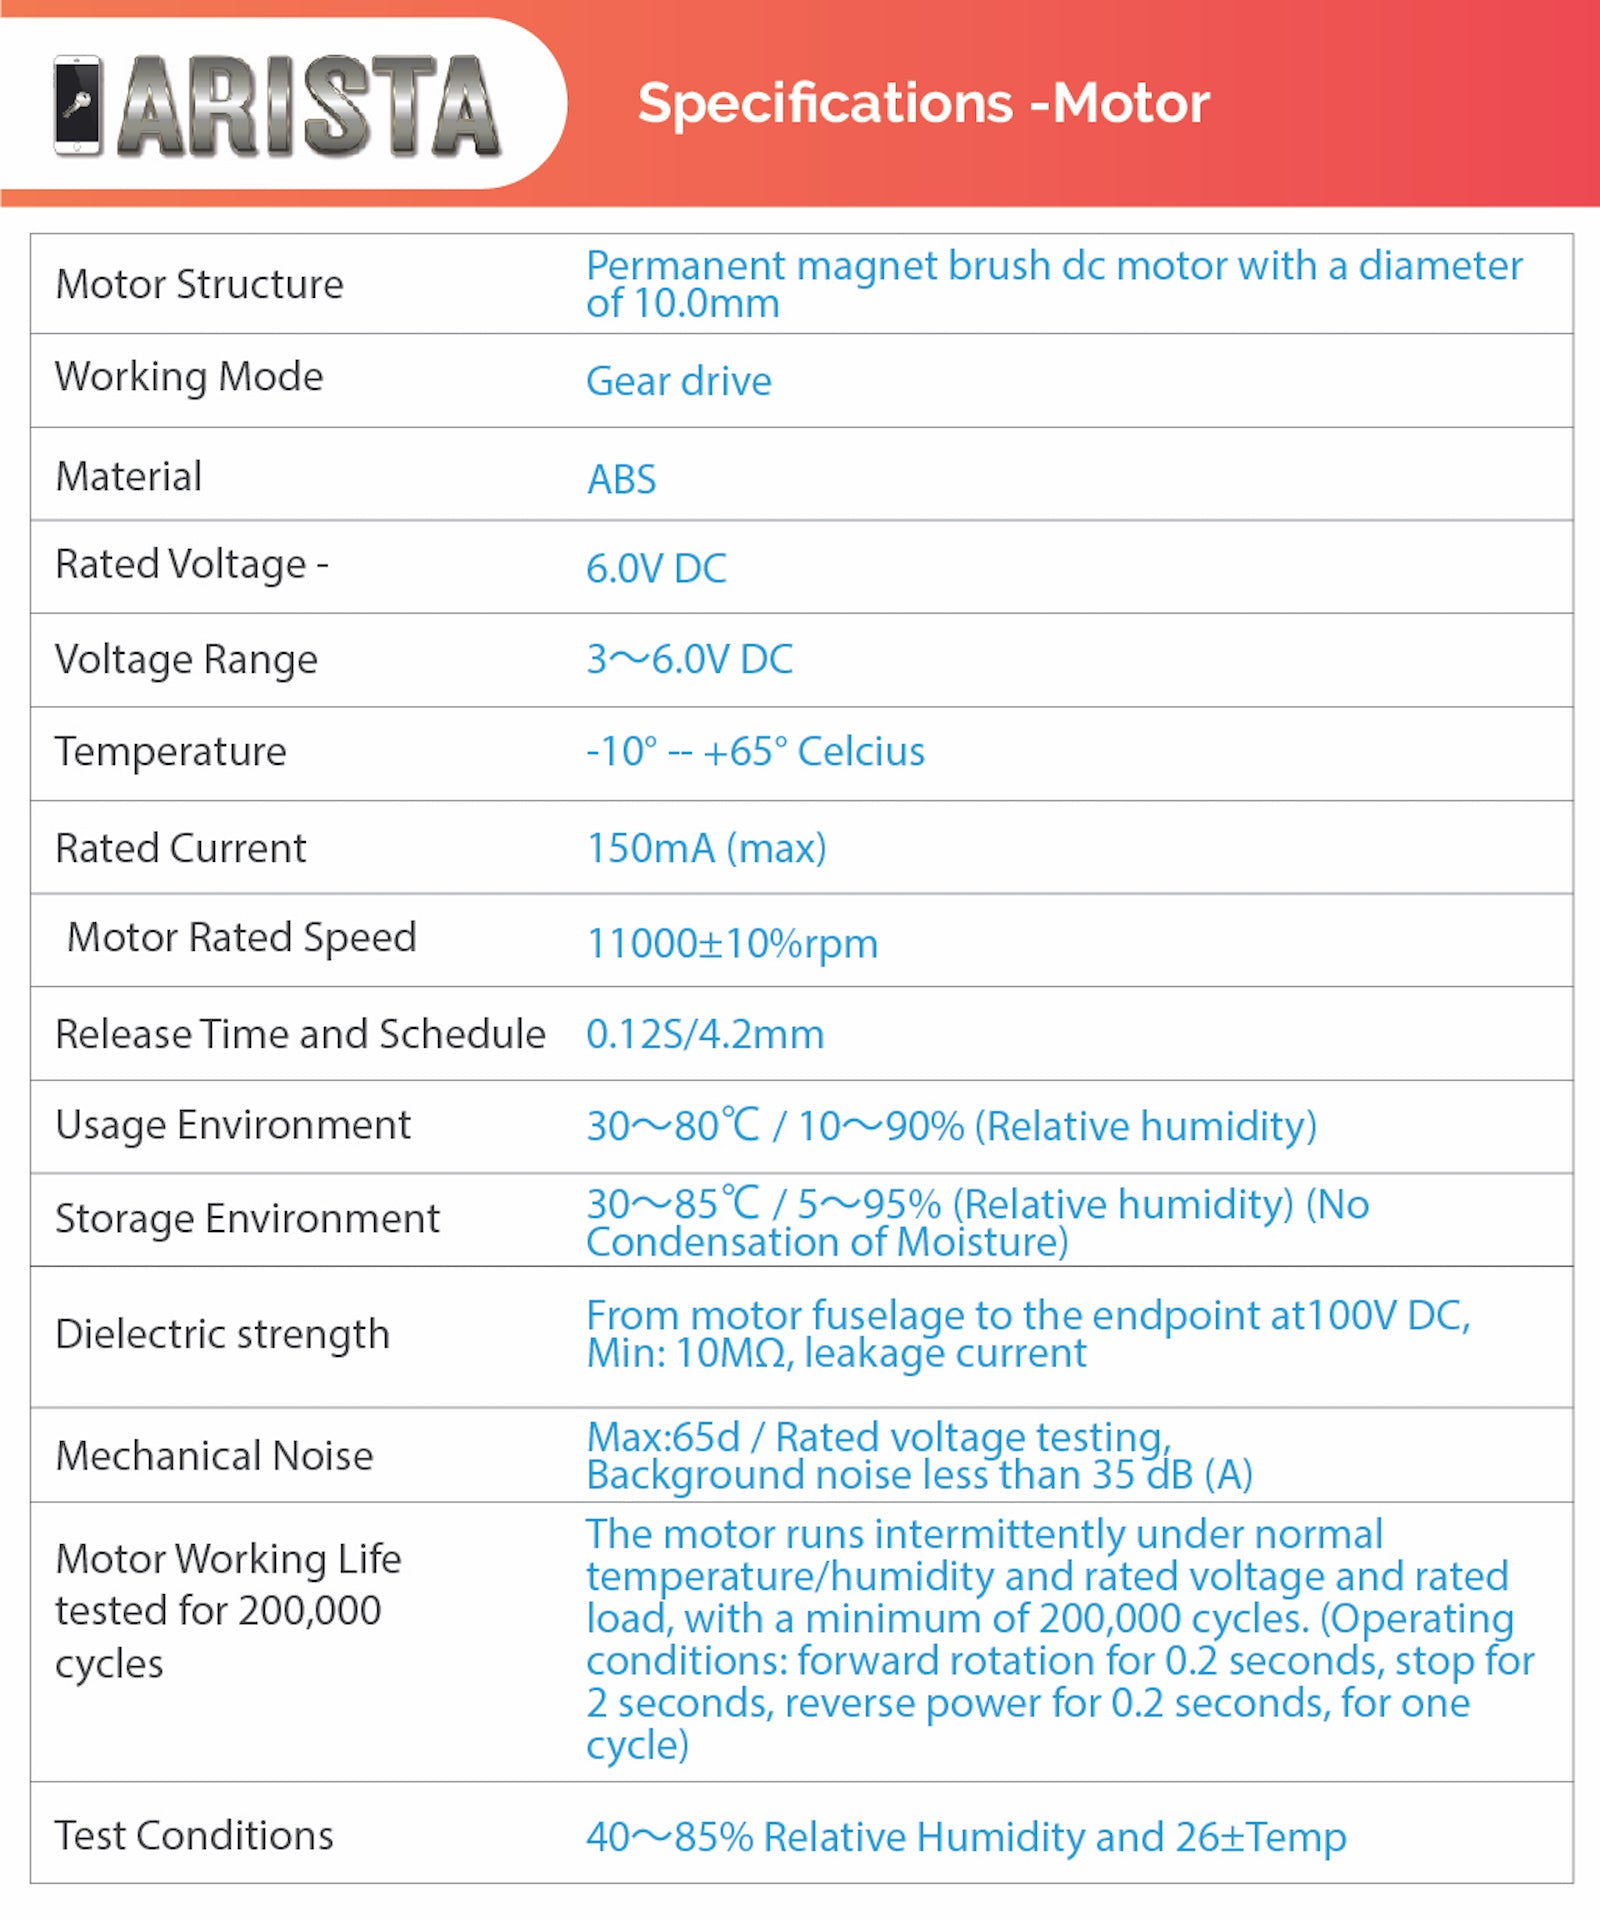 ARISTA Motor Specifications